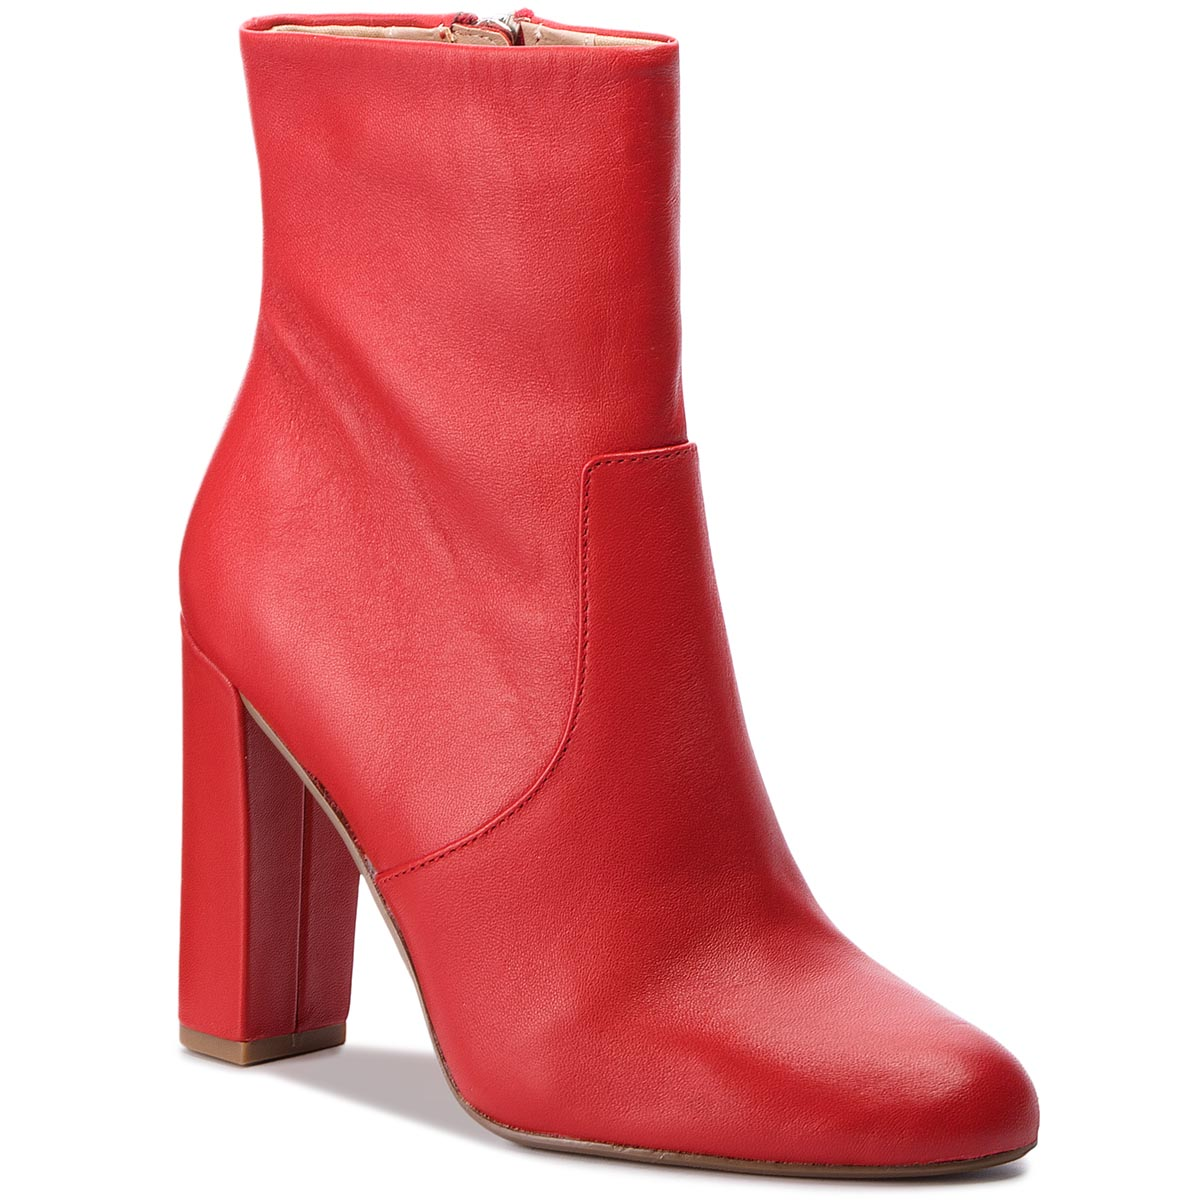 Botki STEVE MADDEN - Editor Ankle Boot SM11000088-03001-607 Red Leather